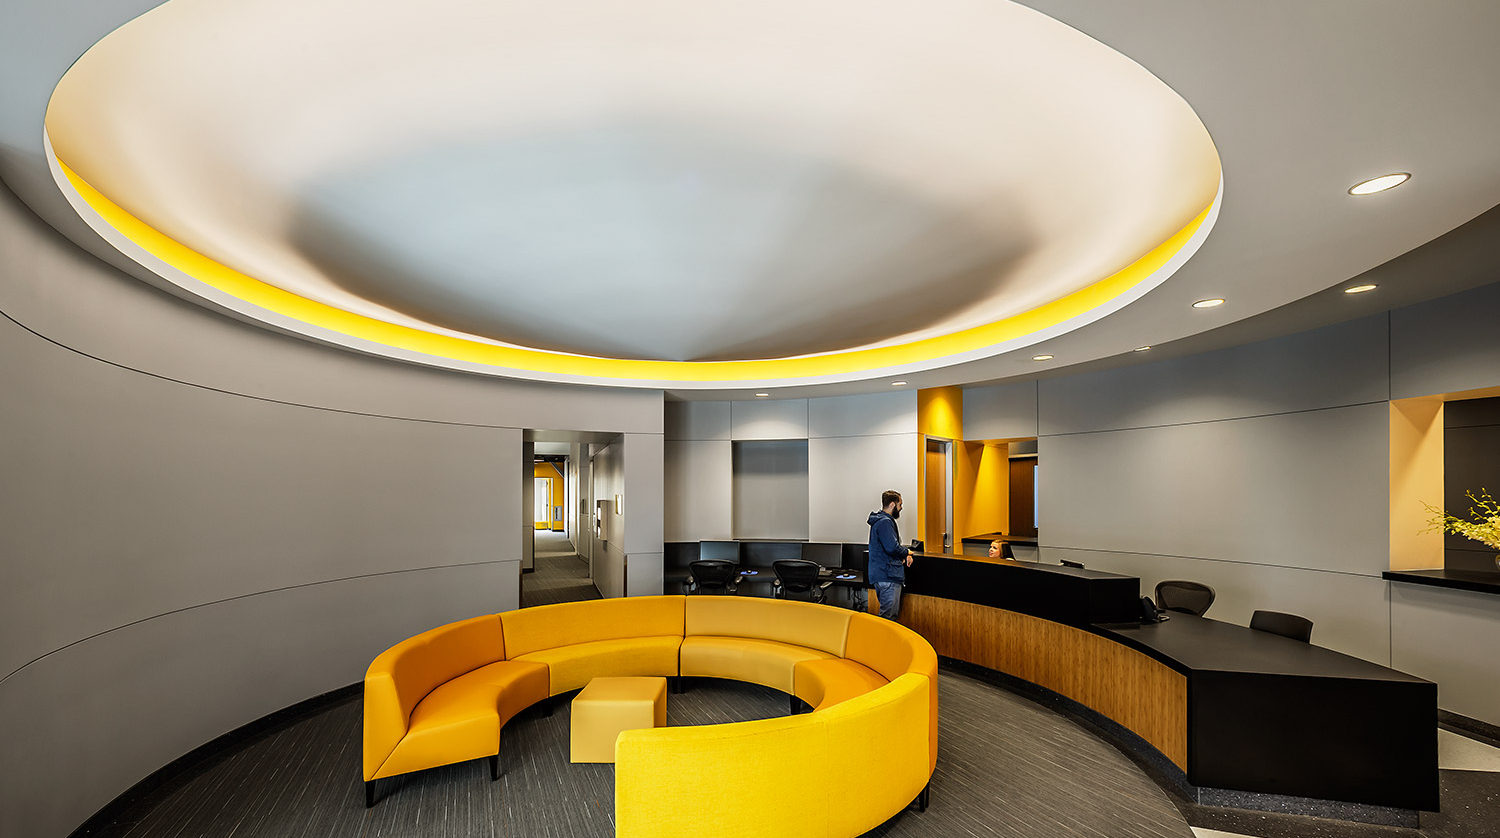 North Park University Johnson Center office lobby